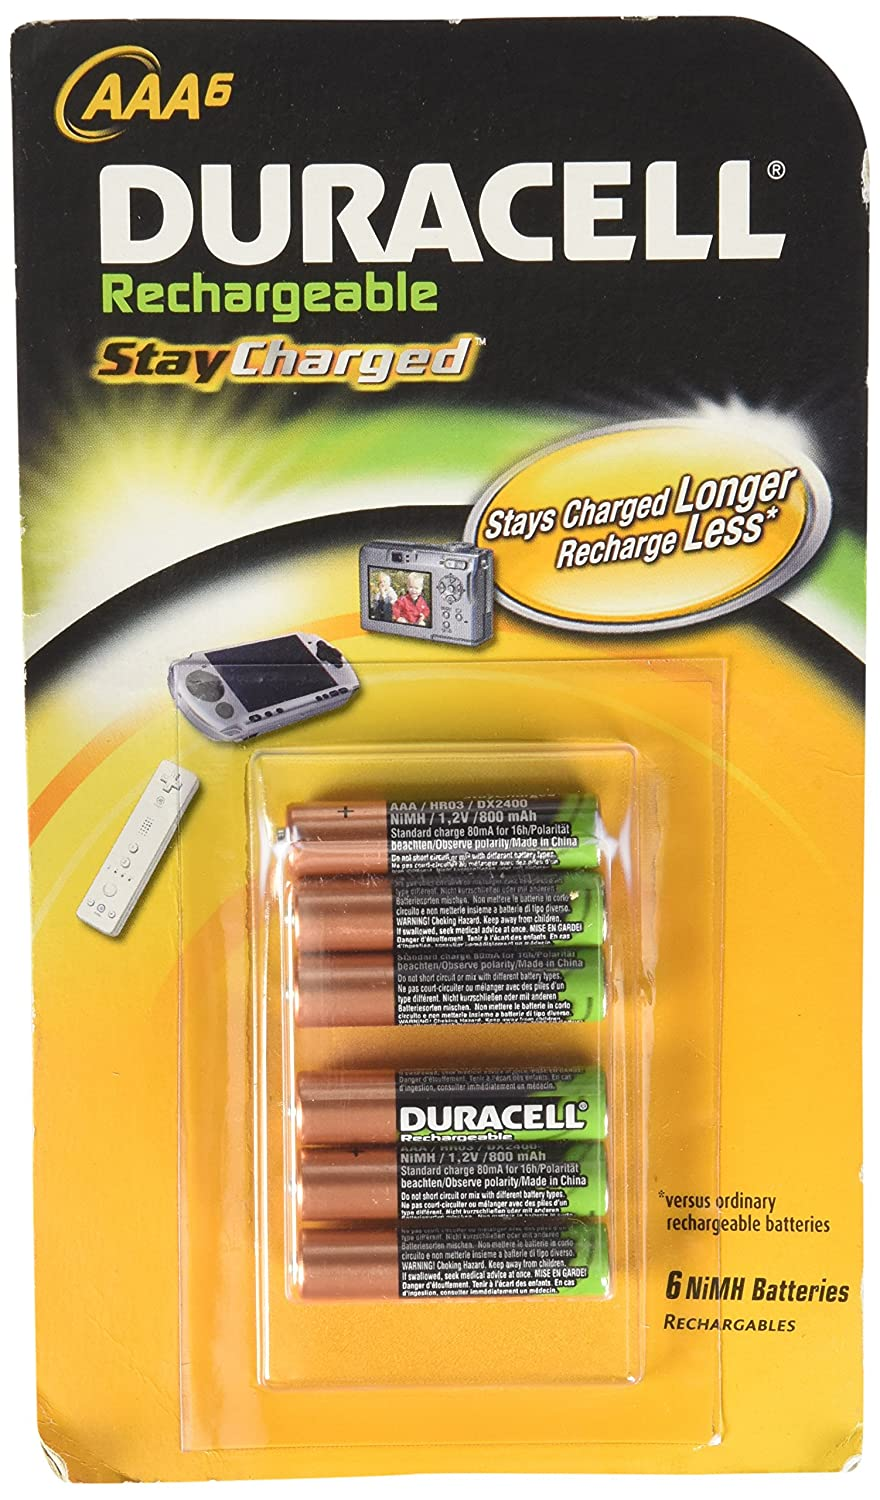 Duracell AAA Rechargeable Batteries (Pack of 6)